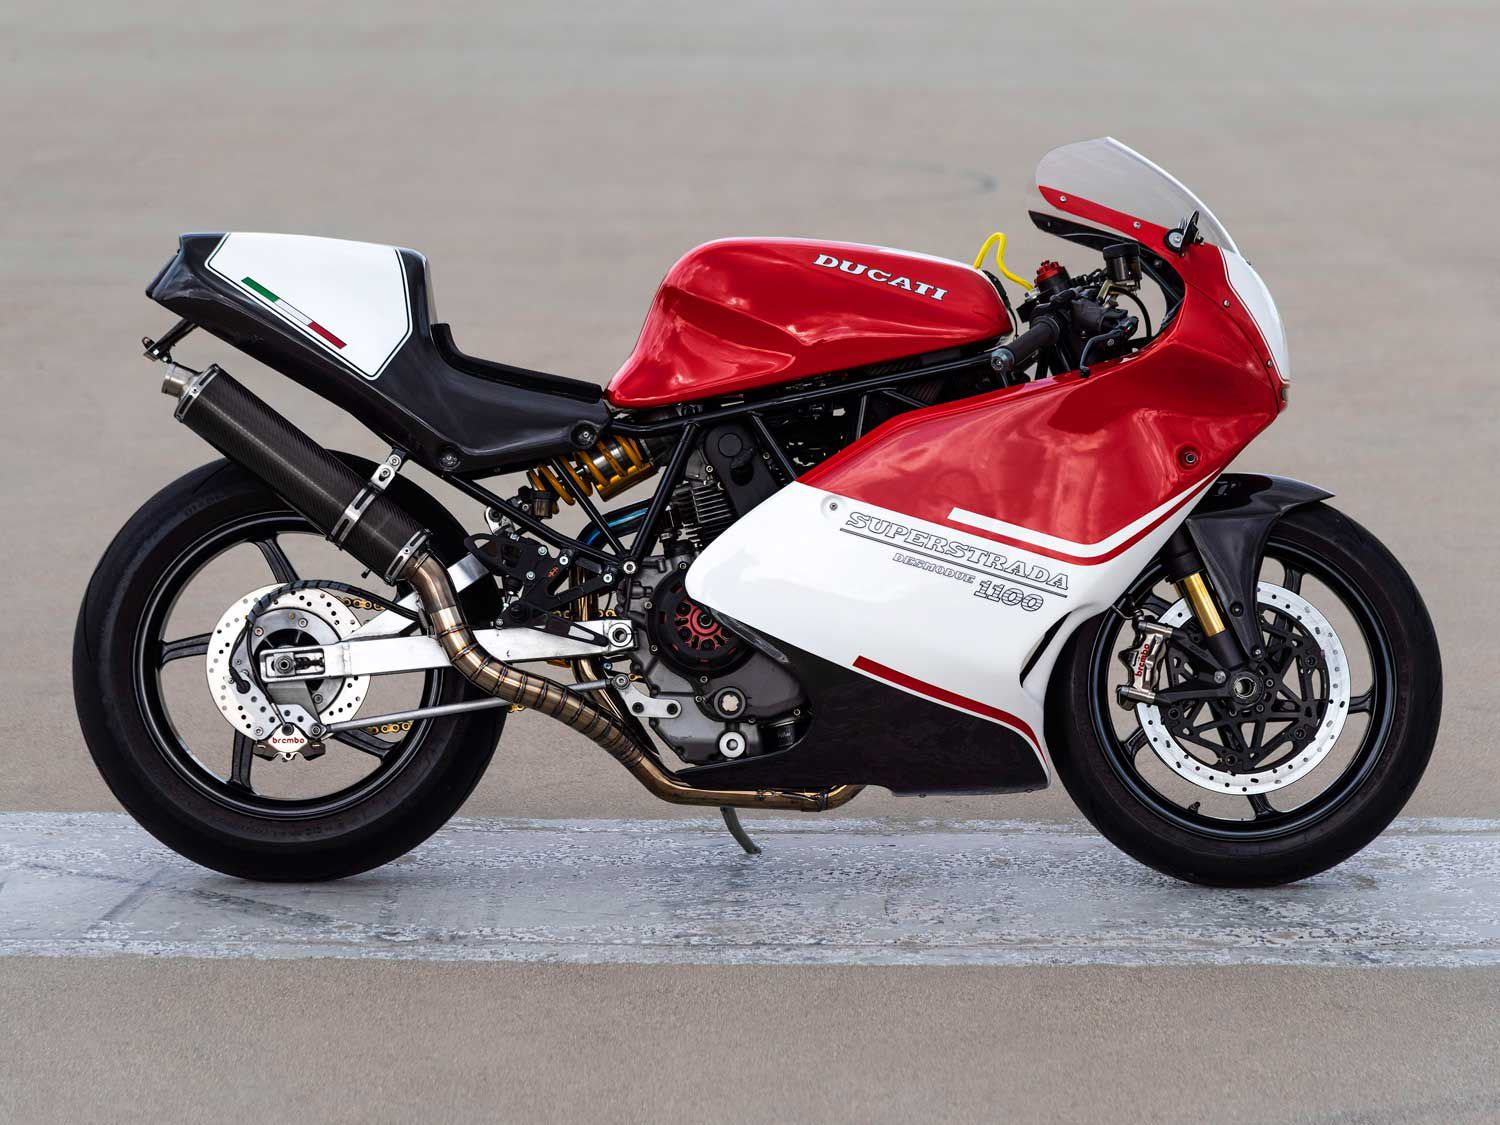 This Custom Ducati Motorcycle Is A Motogp Inspired Dream Motorcyclist